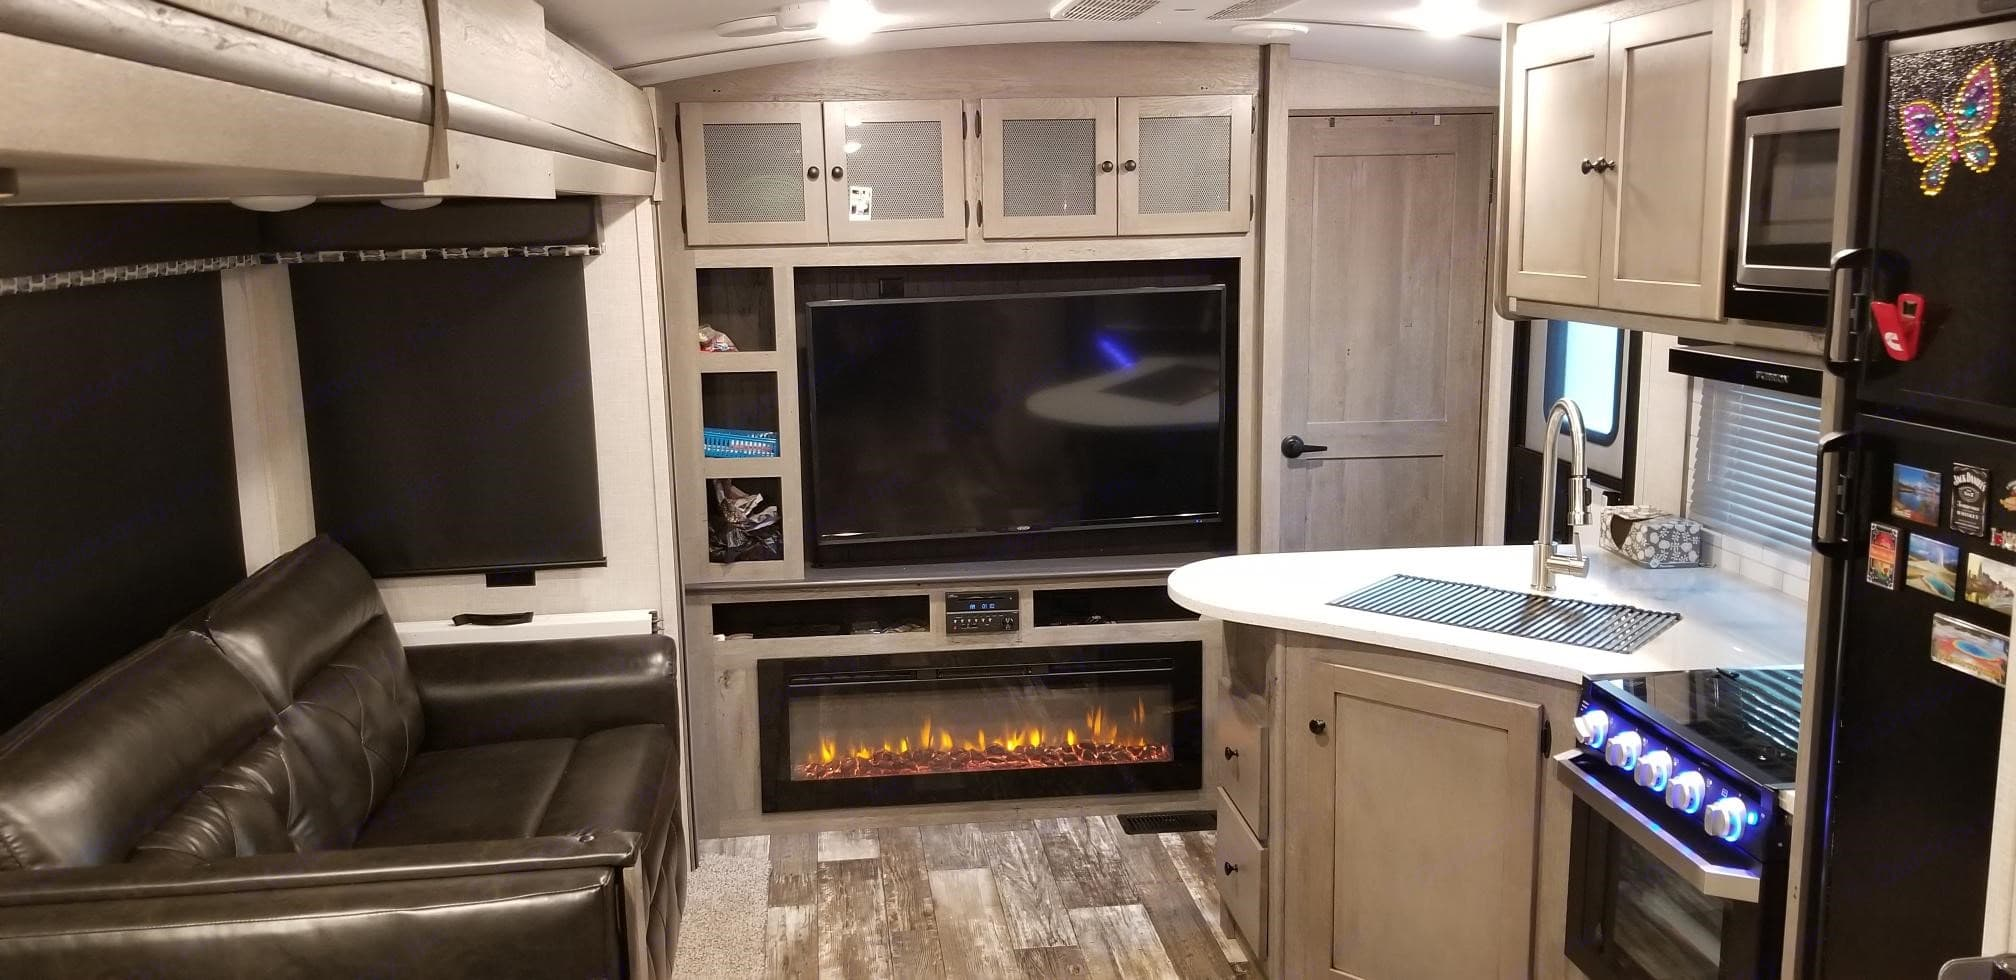 Living and kitchen area are spacious and the 55 inch TV has a wonderful picture.. Keystone Outback 2019